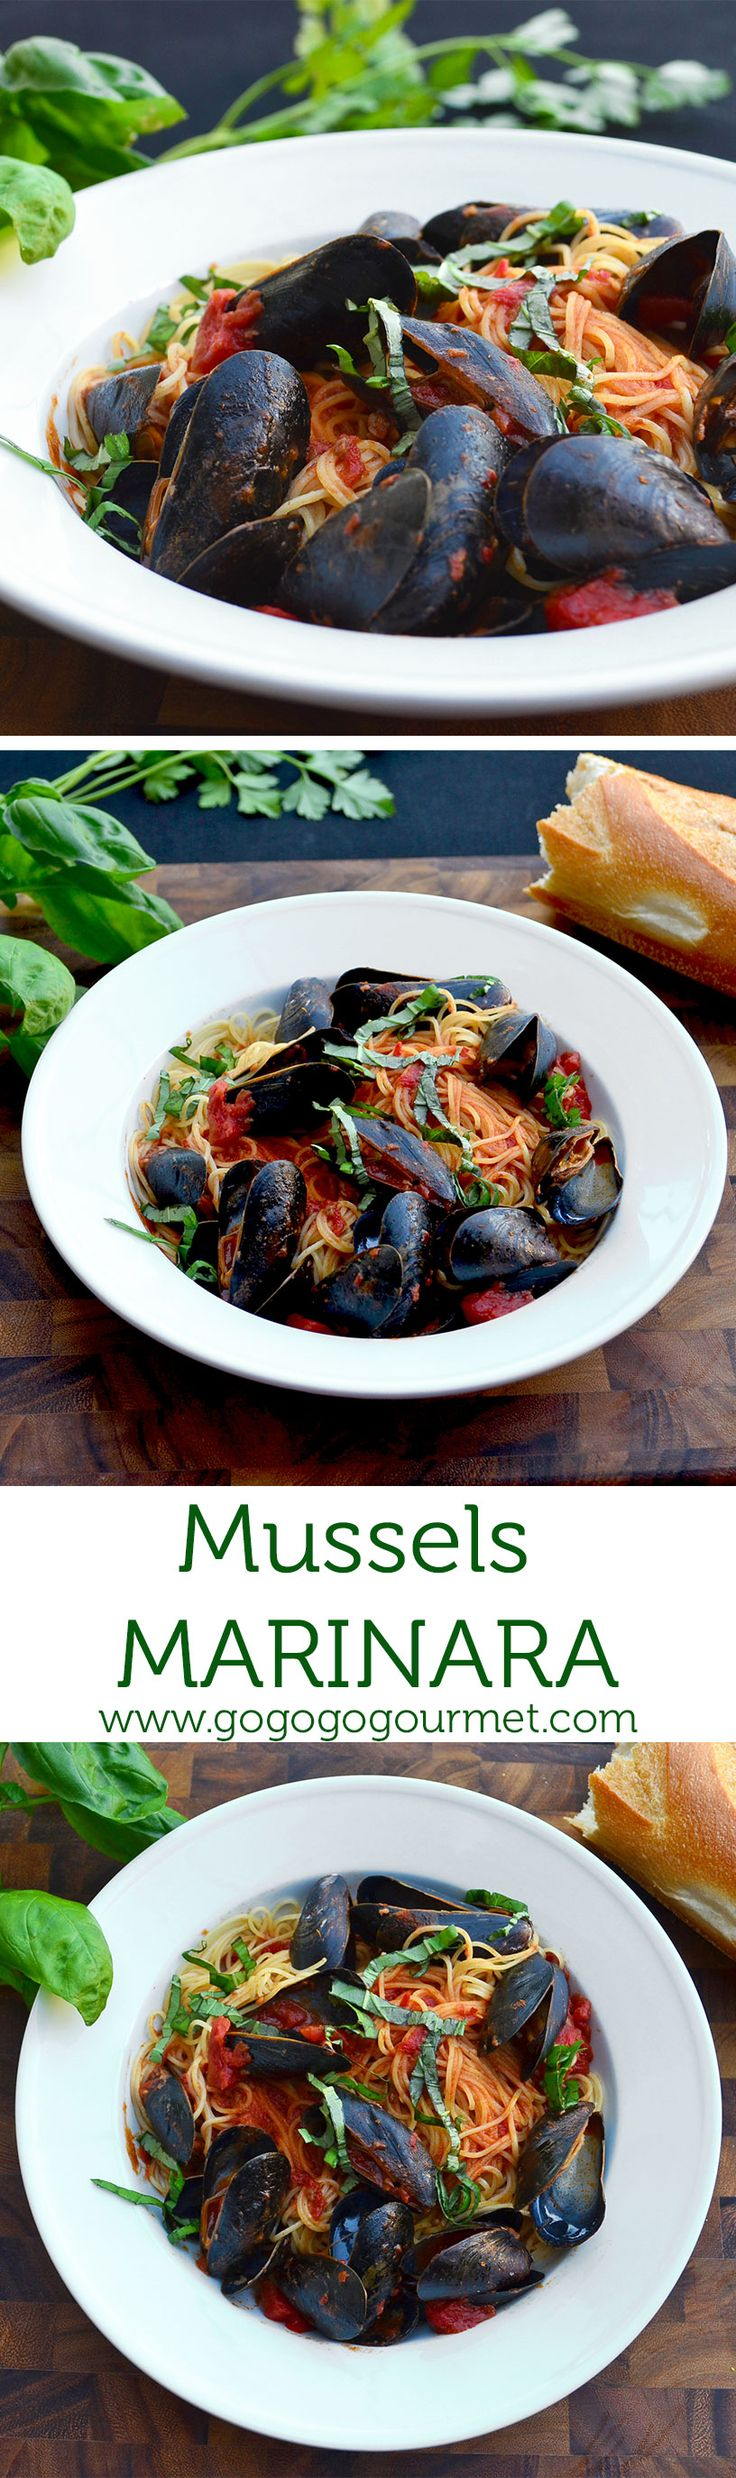 Mussels Marinara comes together in the time it takes to boil water, making it the perfect weeknight meal! | Go Go Go Gourmet @gogogogourmet